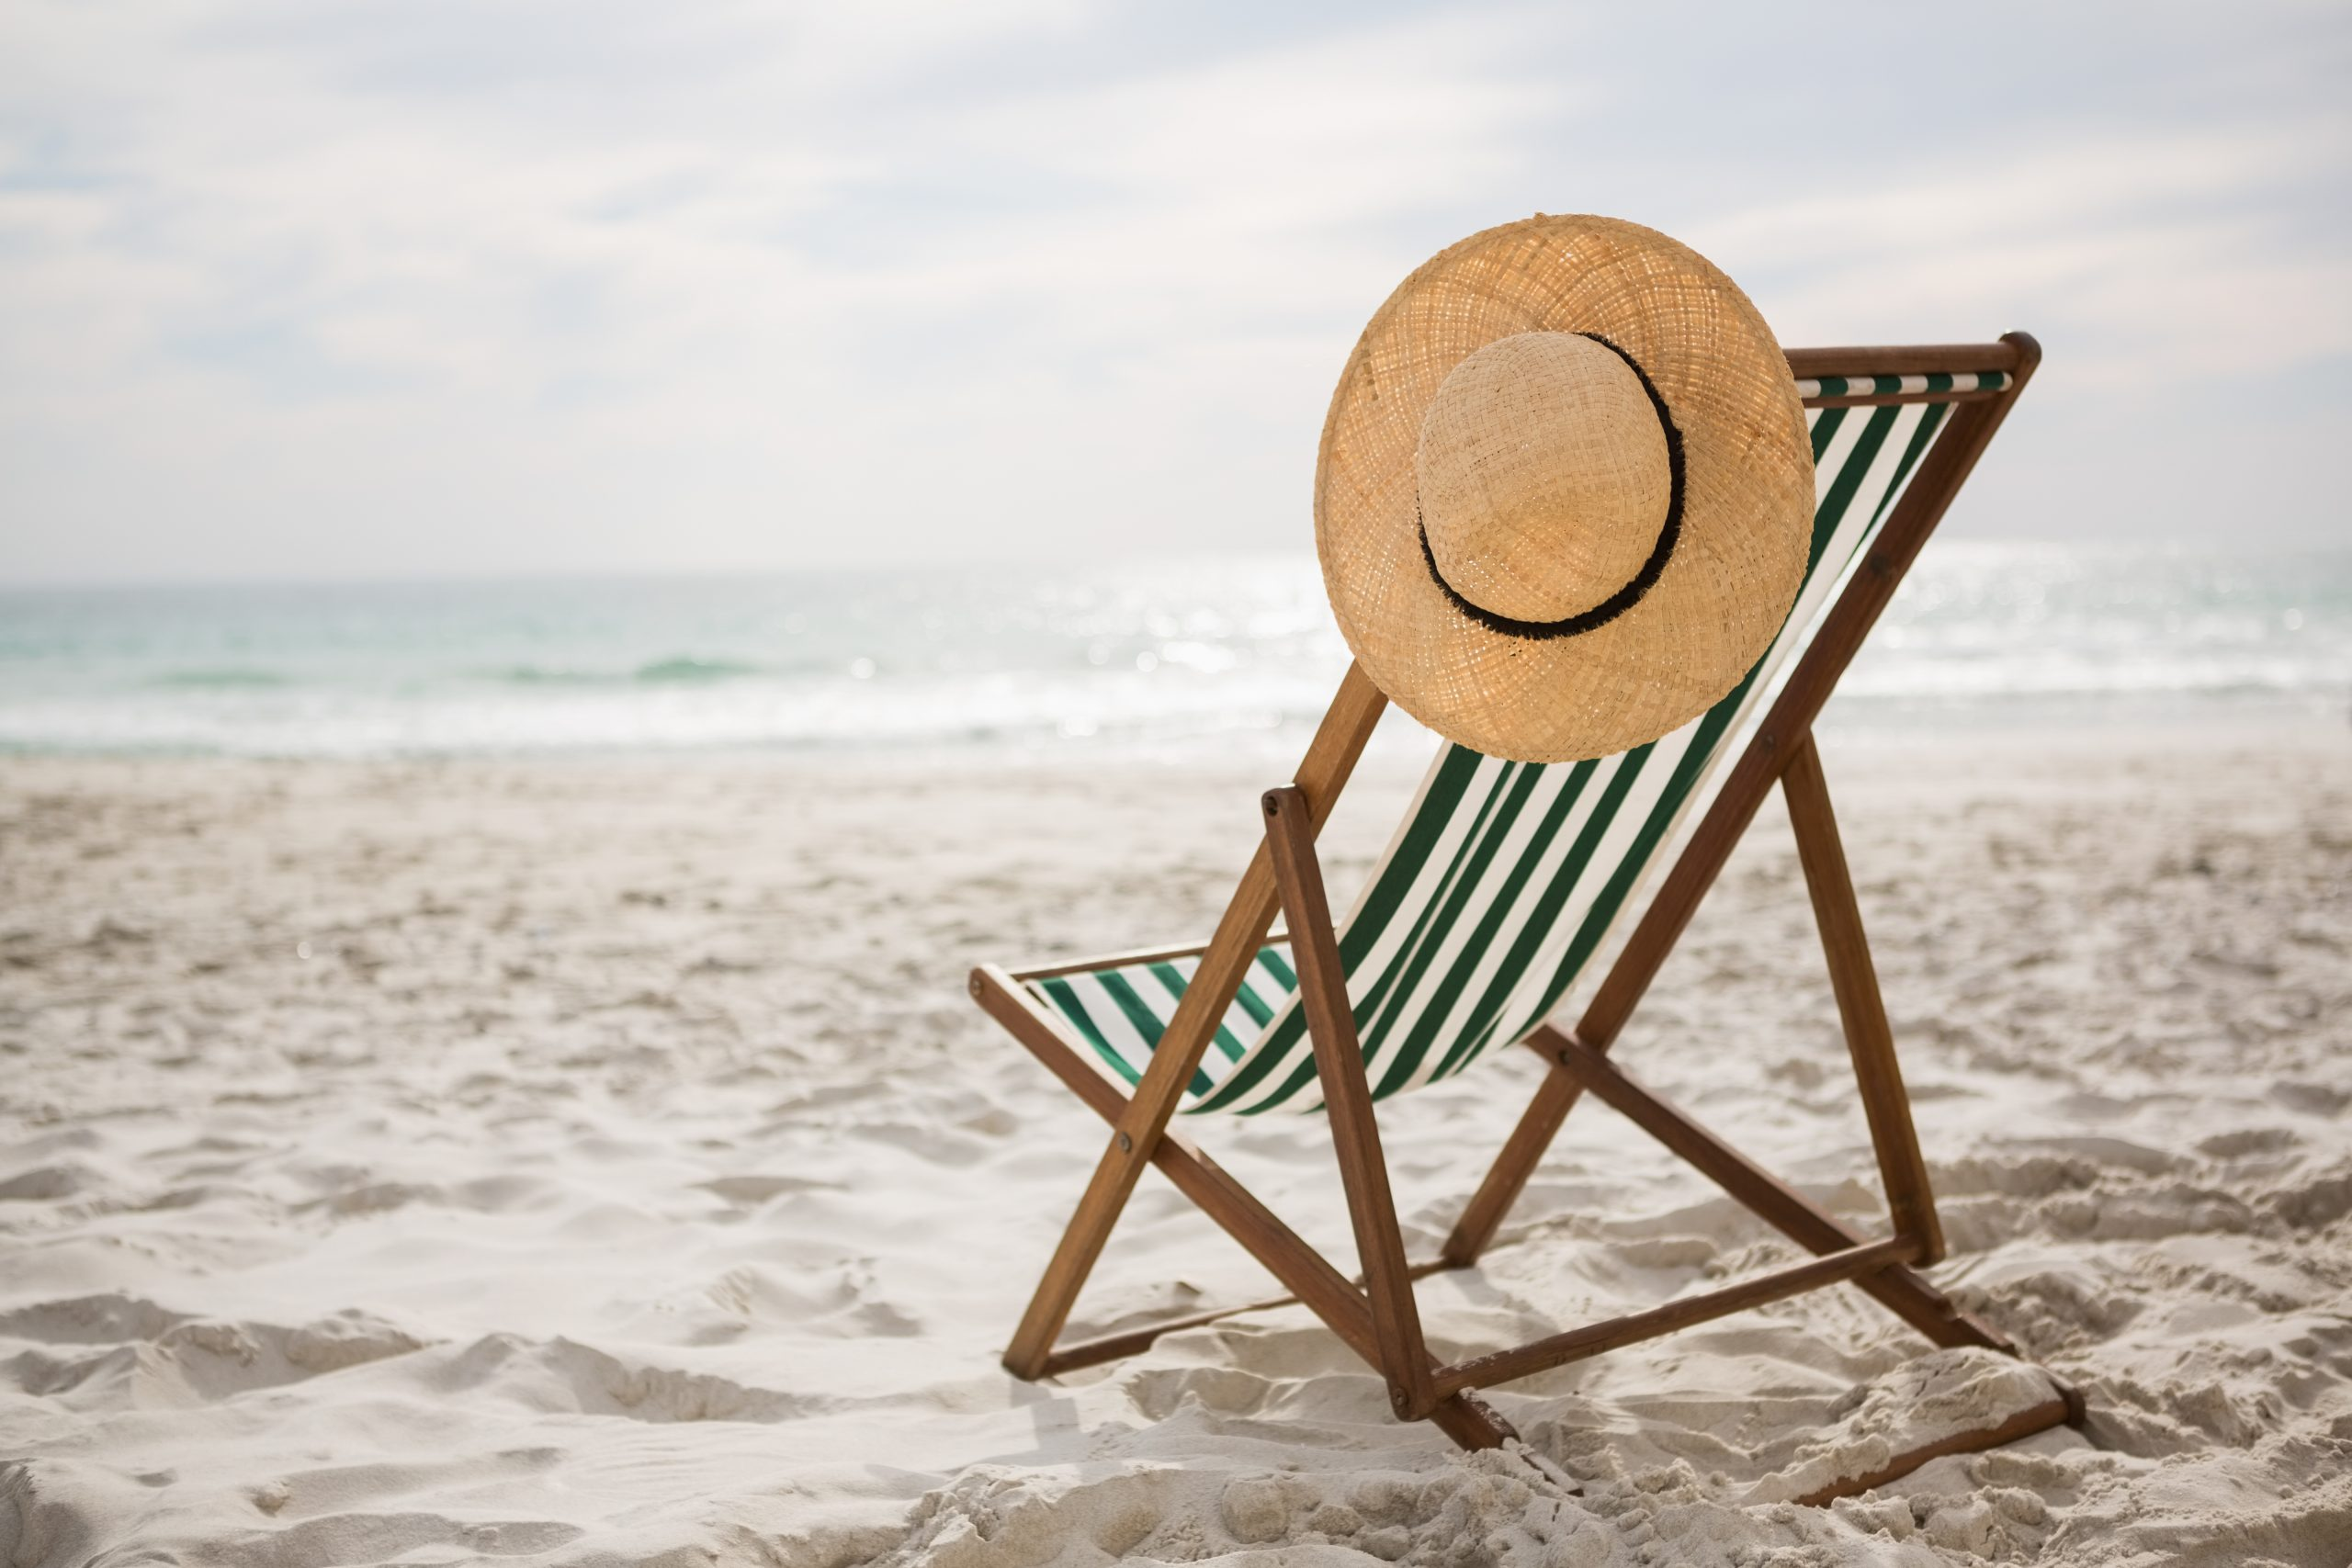 straw hat kept on empty beach chair scaled - Bonnes vacances !